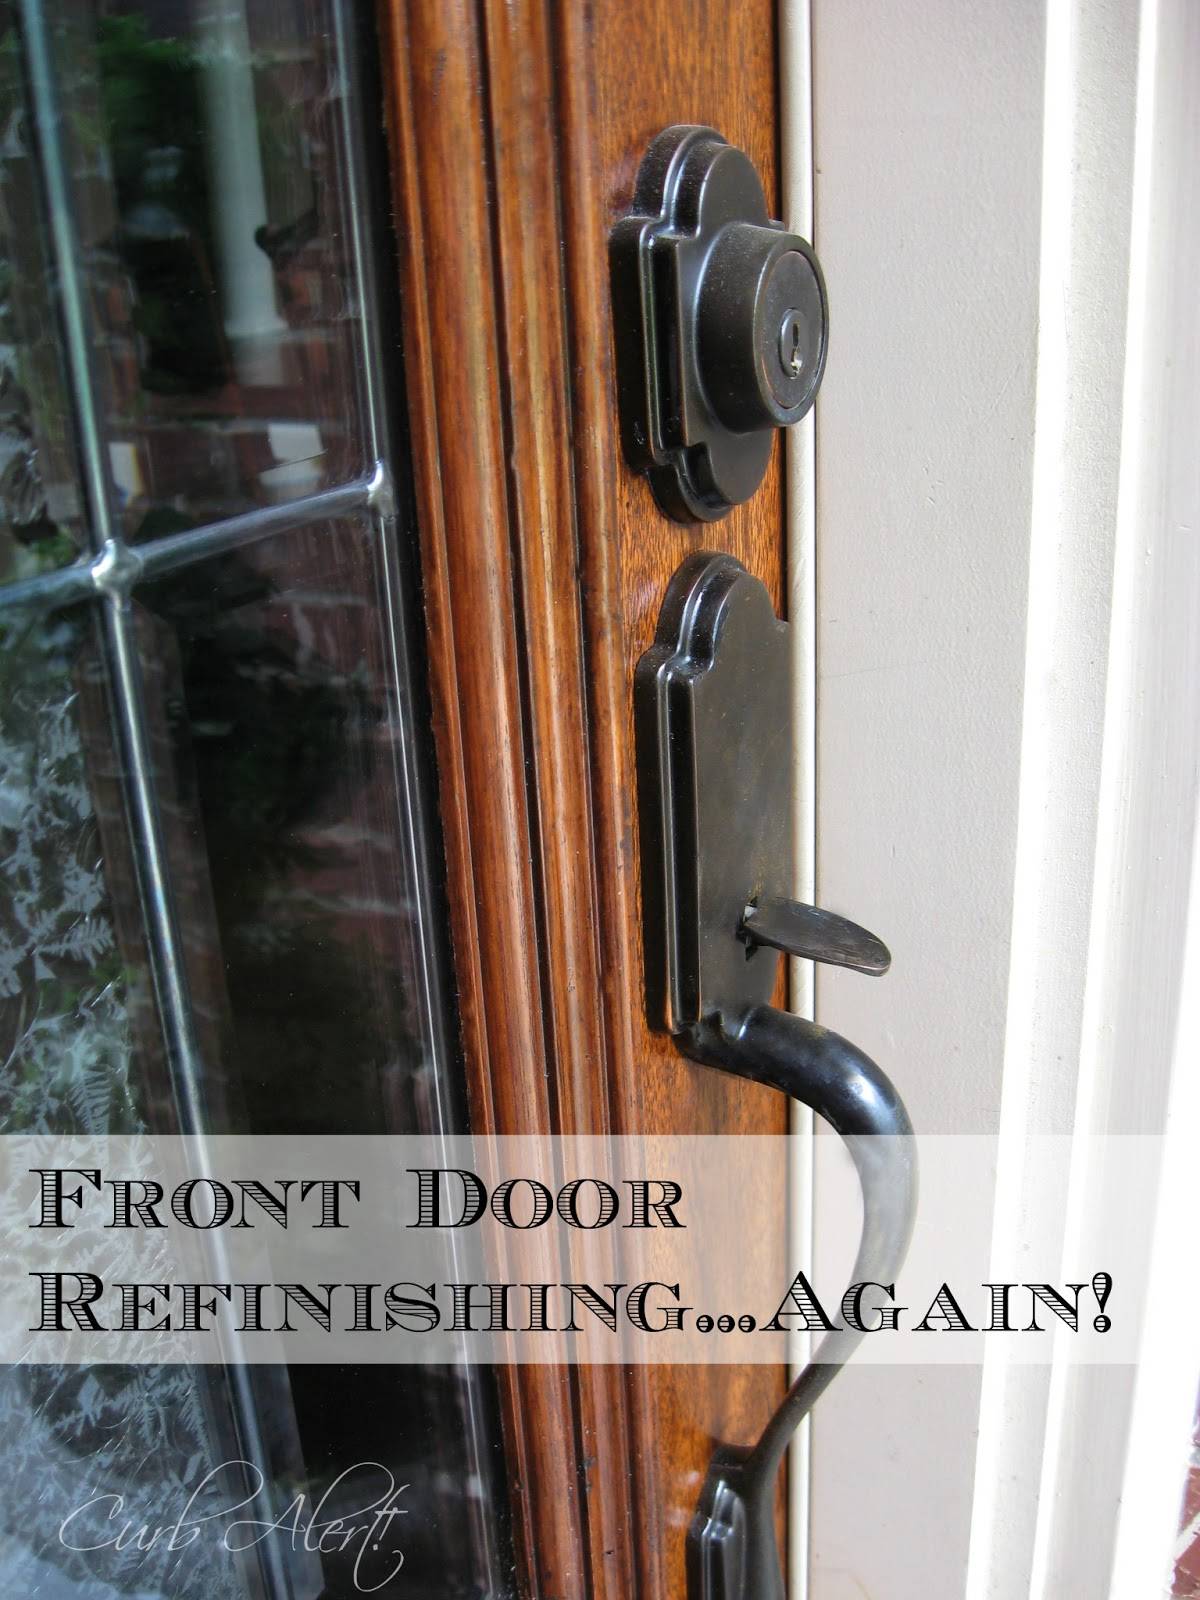 Curb Alert! : Updating Curb Appeal {Front Door Refinishing - Again!}